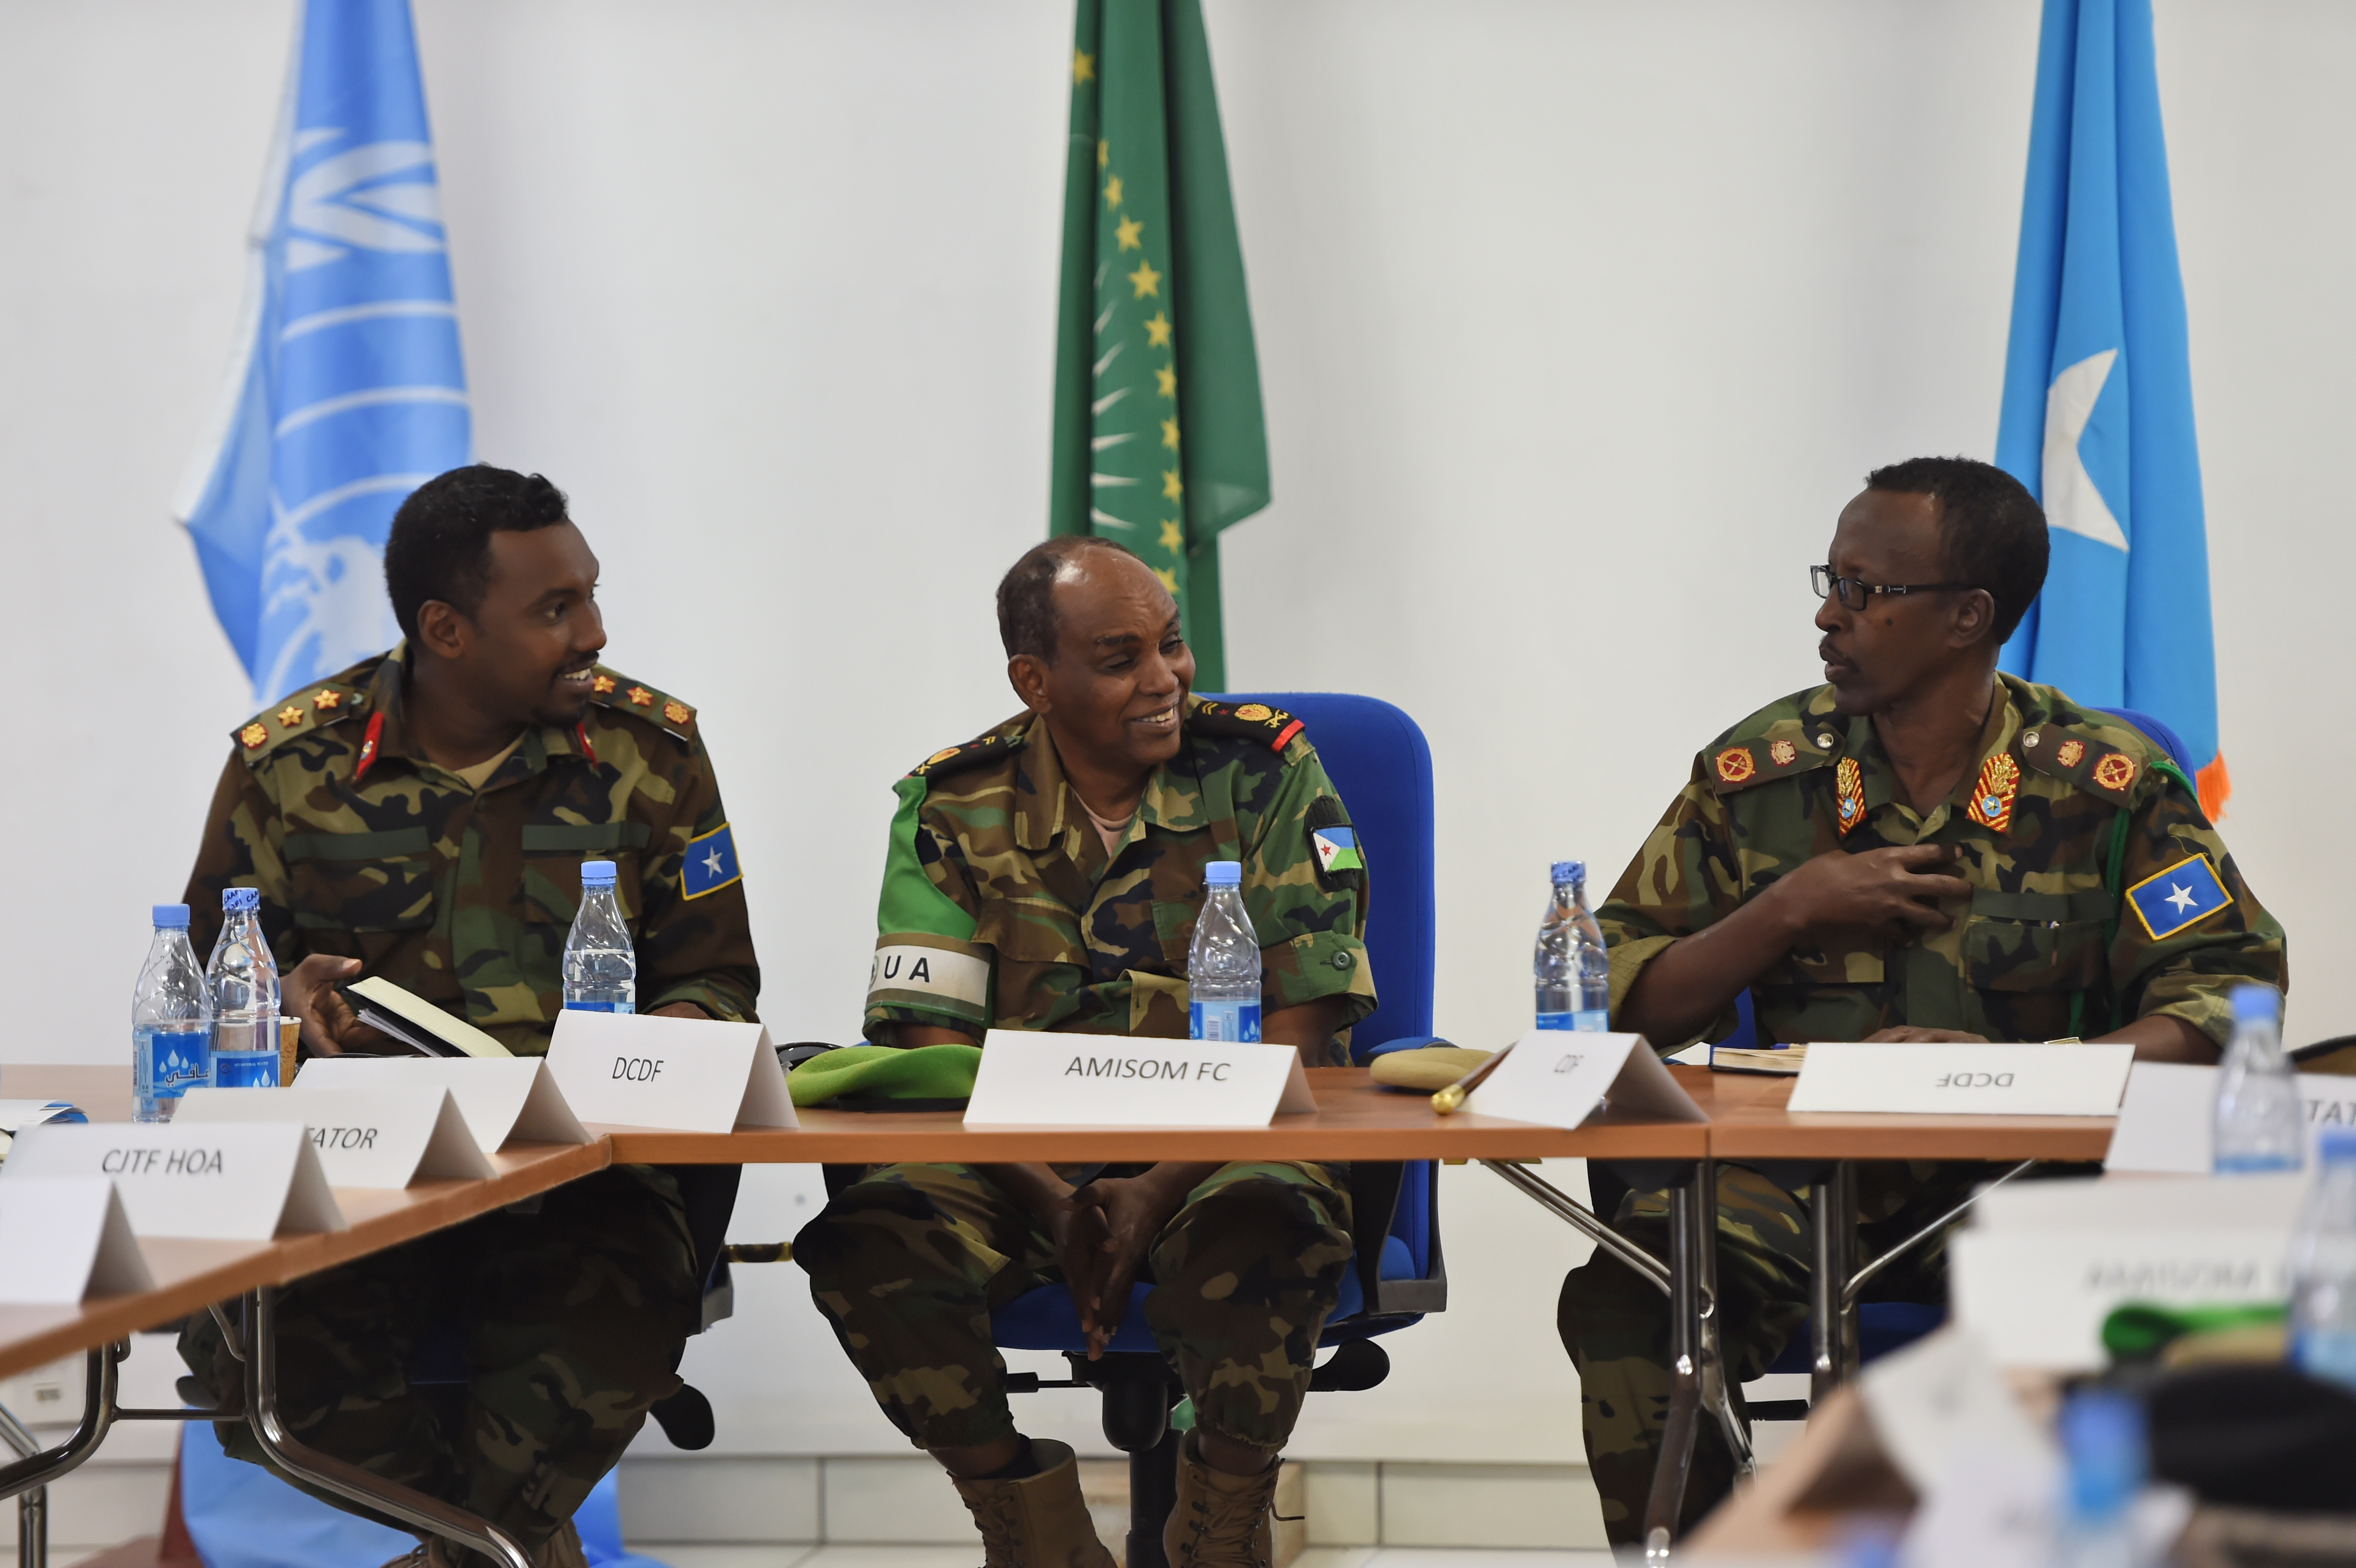 Somali National Army Chief of Defense Forces Maj. Gen. Mohammed Adan Ahmed, right, and Chief of Staff Col. Ahmed Mohammed, left, converse with African Union Mission in Somalia Col. Ali Noor during the SNA Symposium in downtown Mogadishu, Jan. 12, 2017. The symposium is part of an ongoing international effort to aid security conditions throughout Somalia by fostering the growth and revitalization of the national military defense force, which disbanded following the collapse of the country's central government in 1991. (Photo by Master Sgt. Paul Gorman/Released)